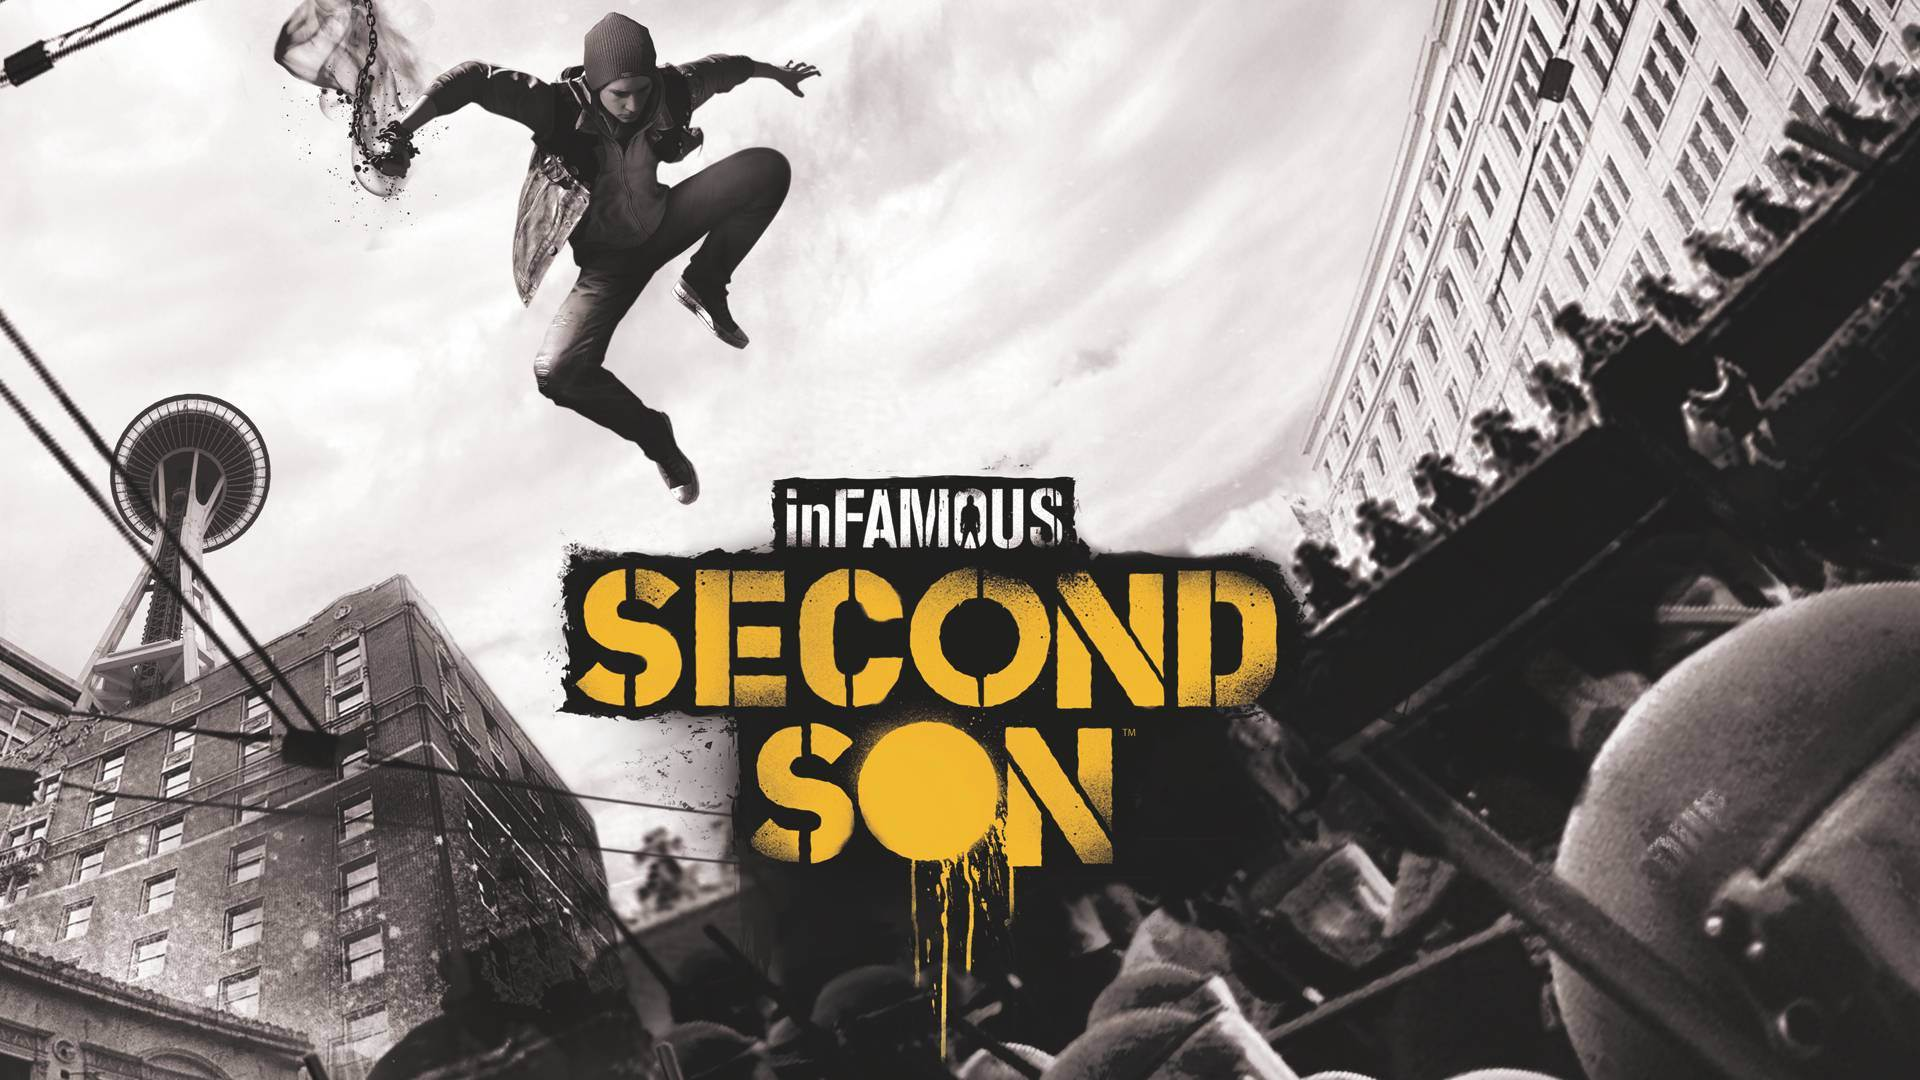 inFamous: Second Son, impresiones finales (PS4)